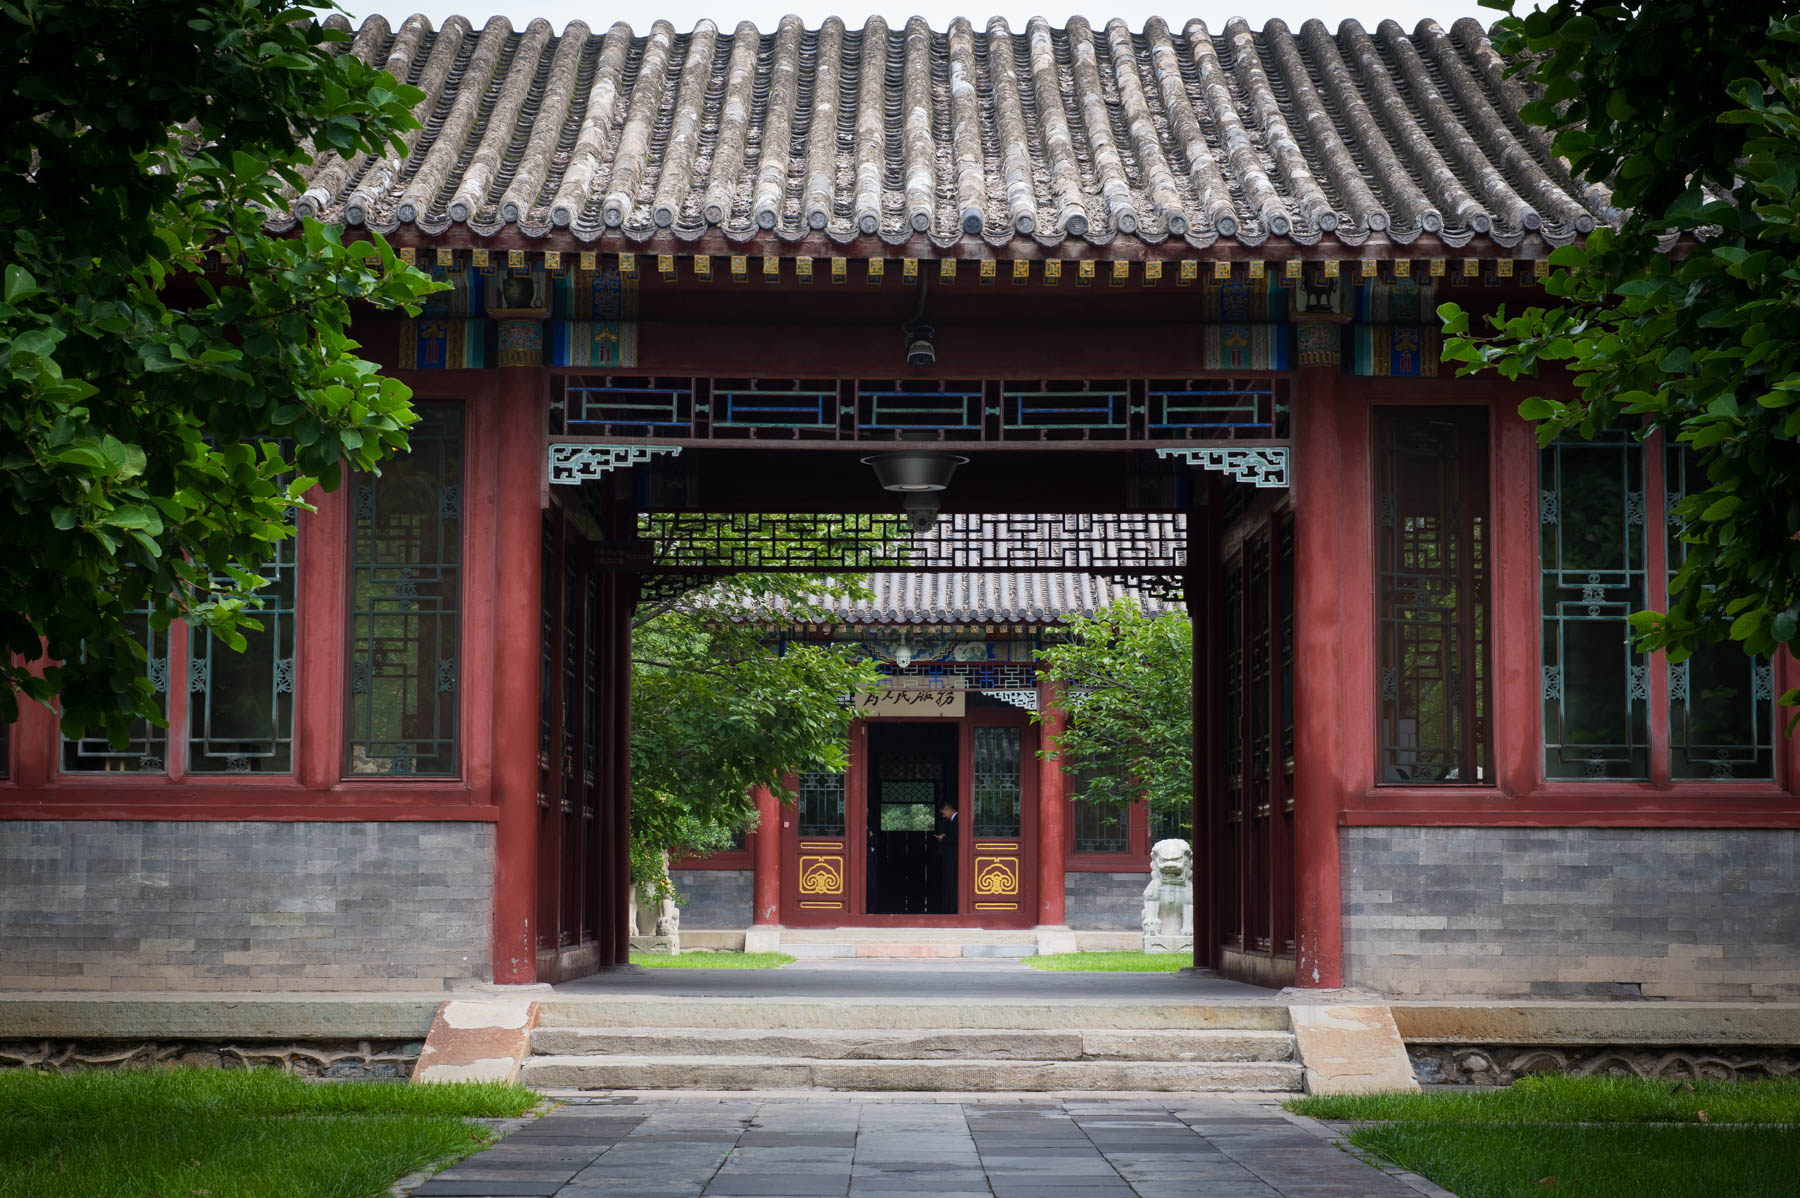 Tsinghua University is a research university located in Beijing and is ranked as one of the top academic institutions in China.